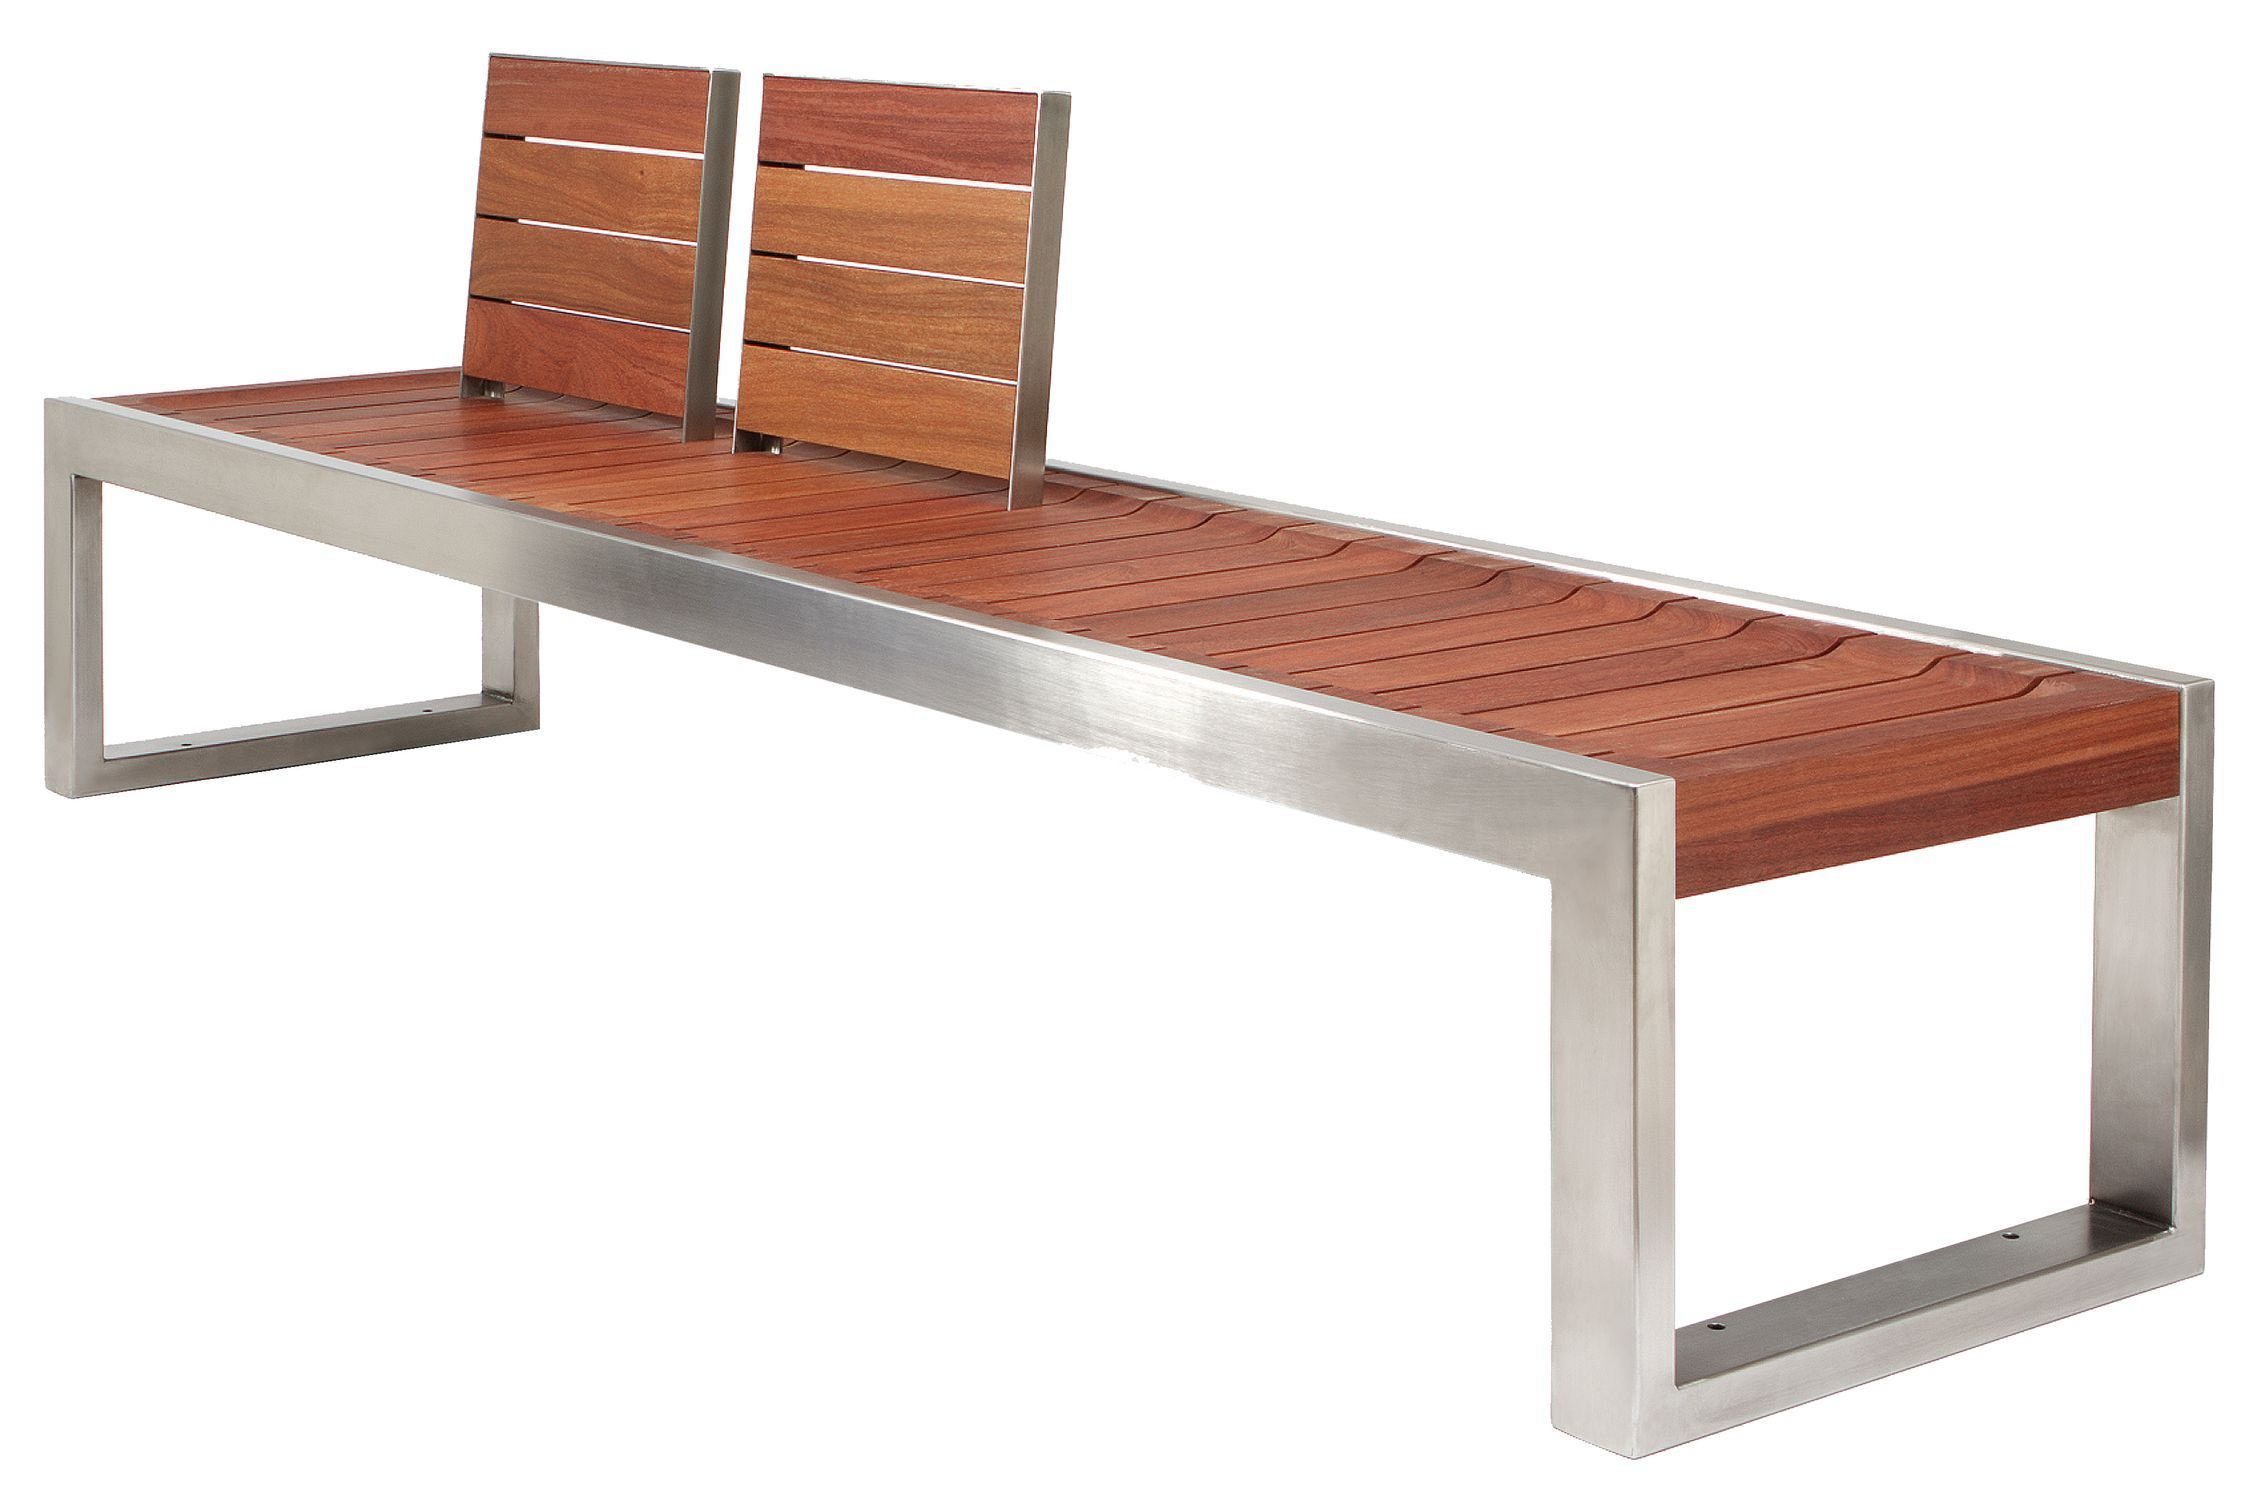 unique design for modern wooden bench combined with stainless